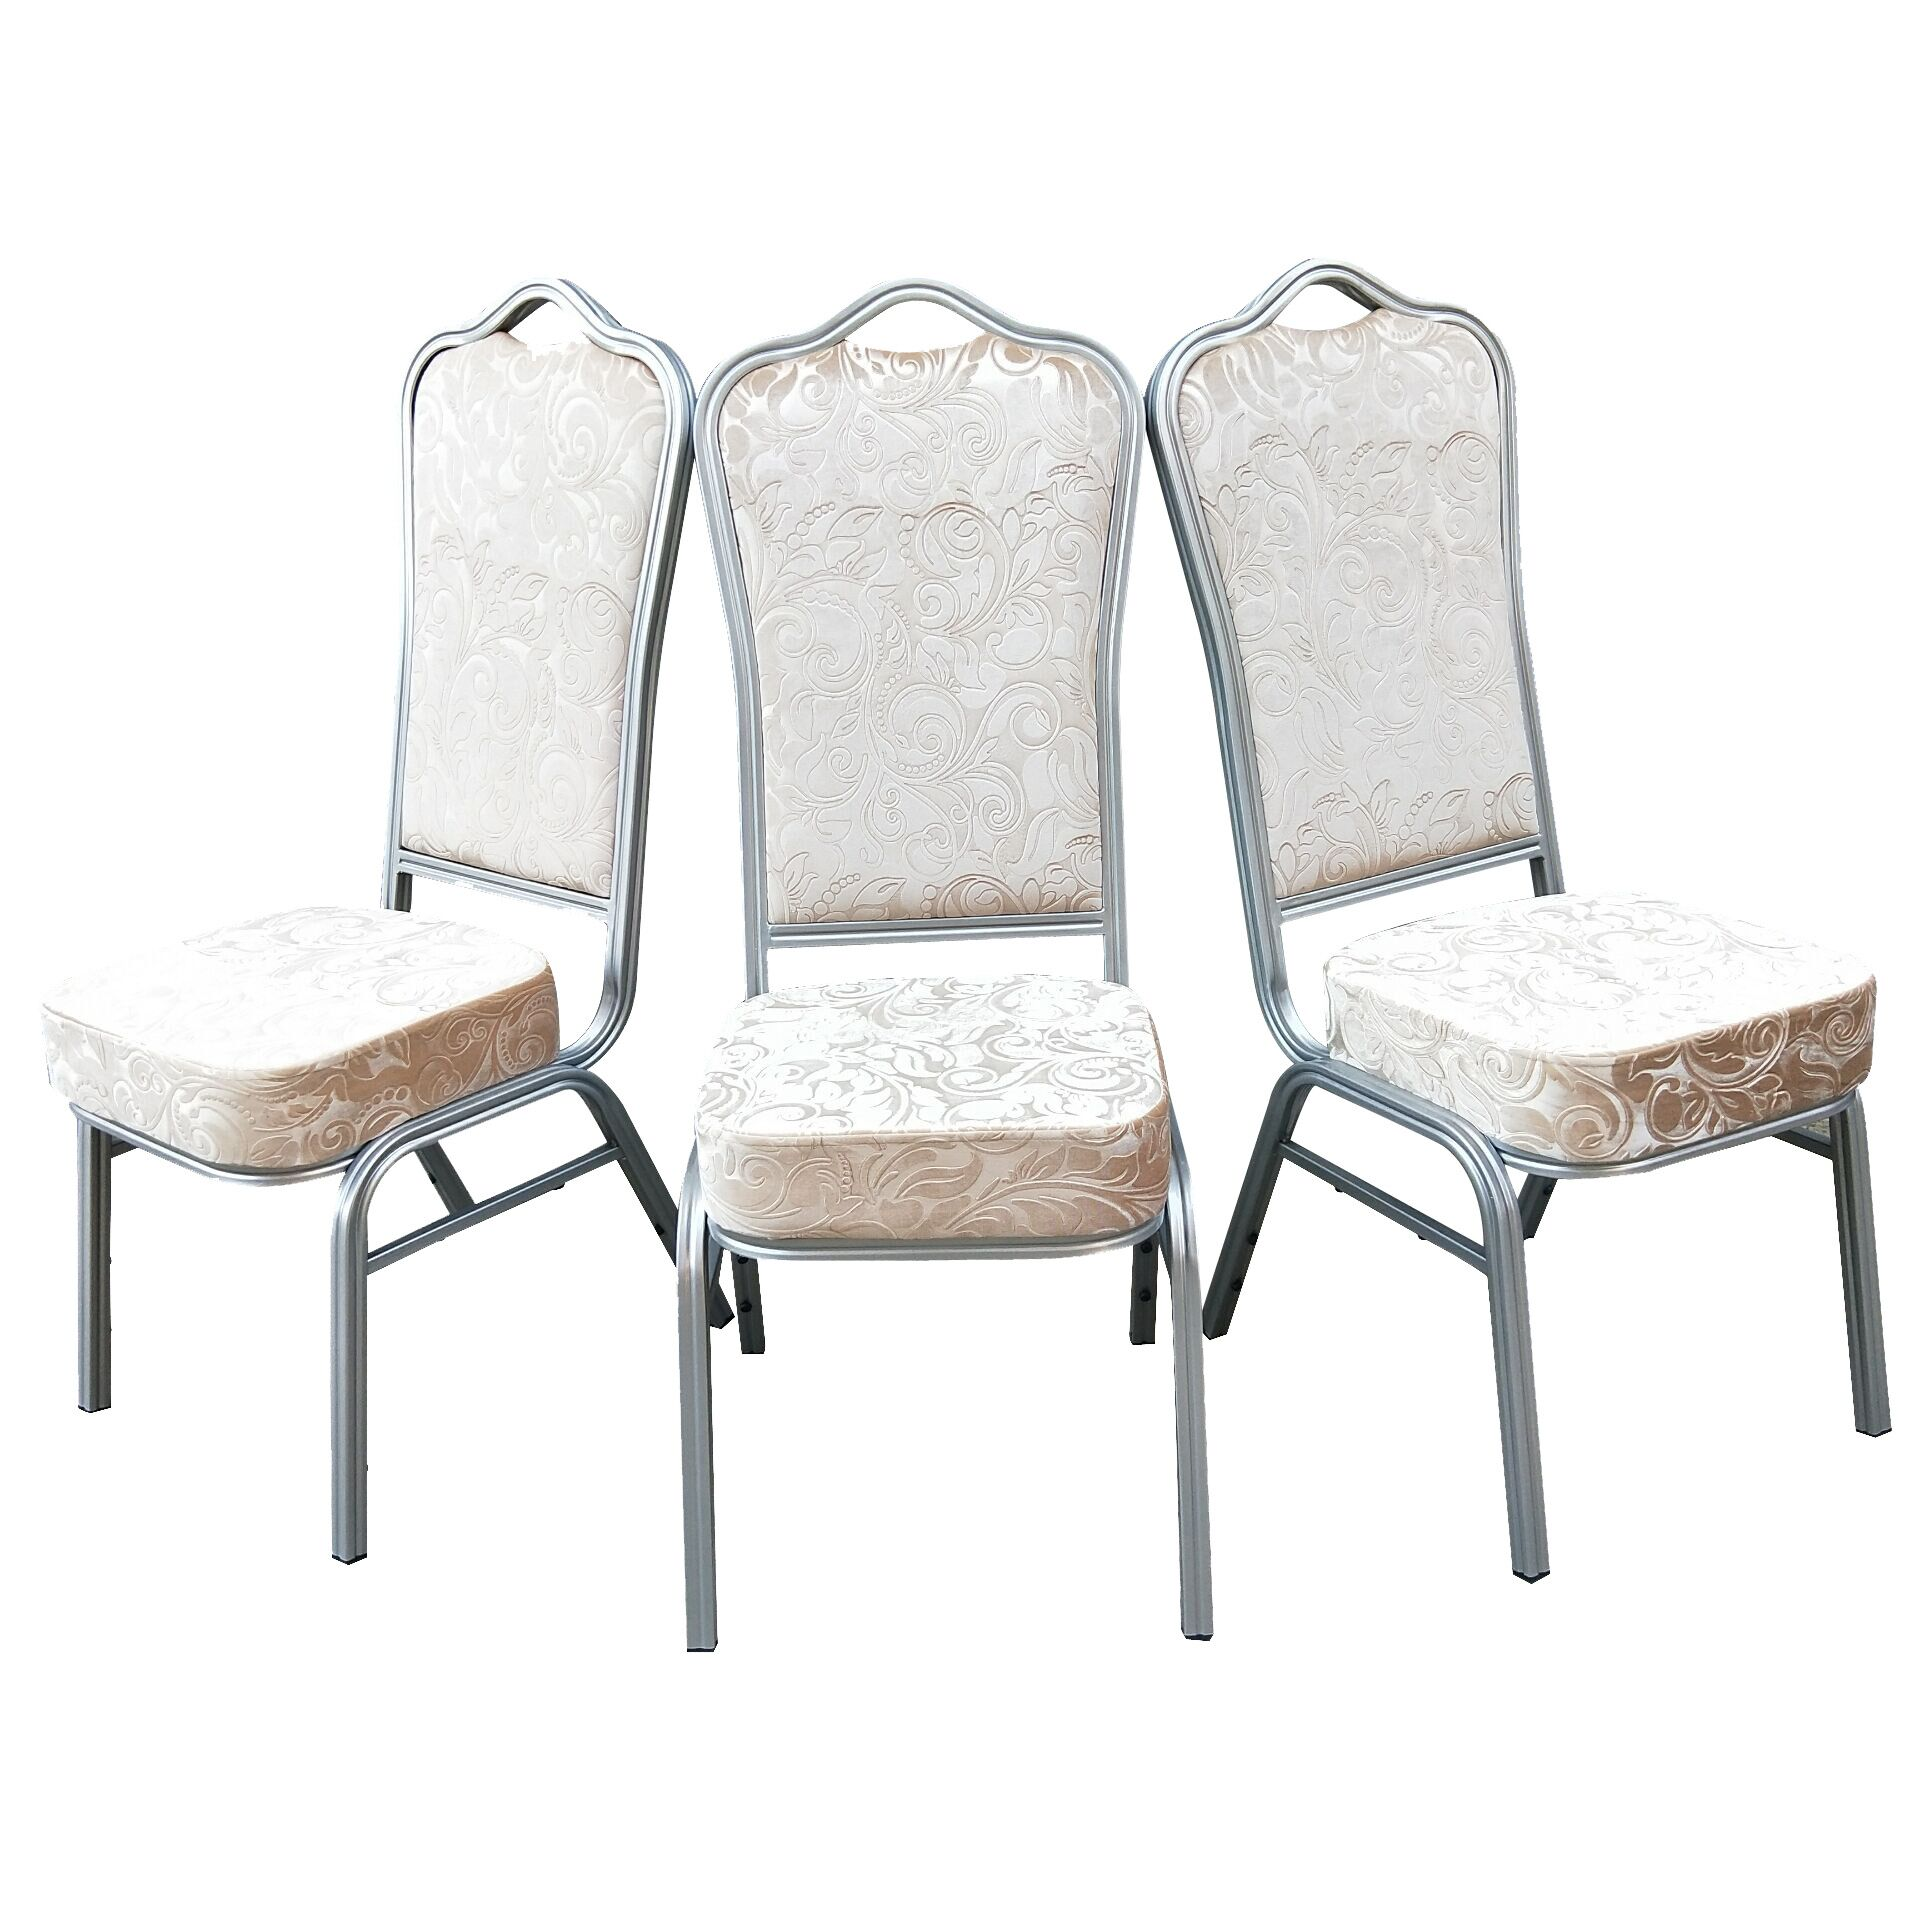 Well-designed New Design Church Furniture Chair In 2015 - High back Banquet Furniture For Sale SF-G04 – Jiangchang Furniture